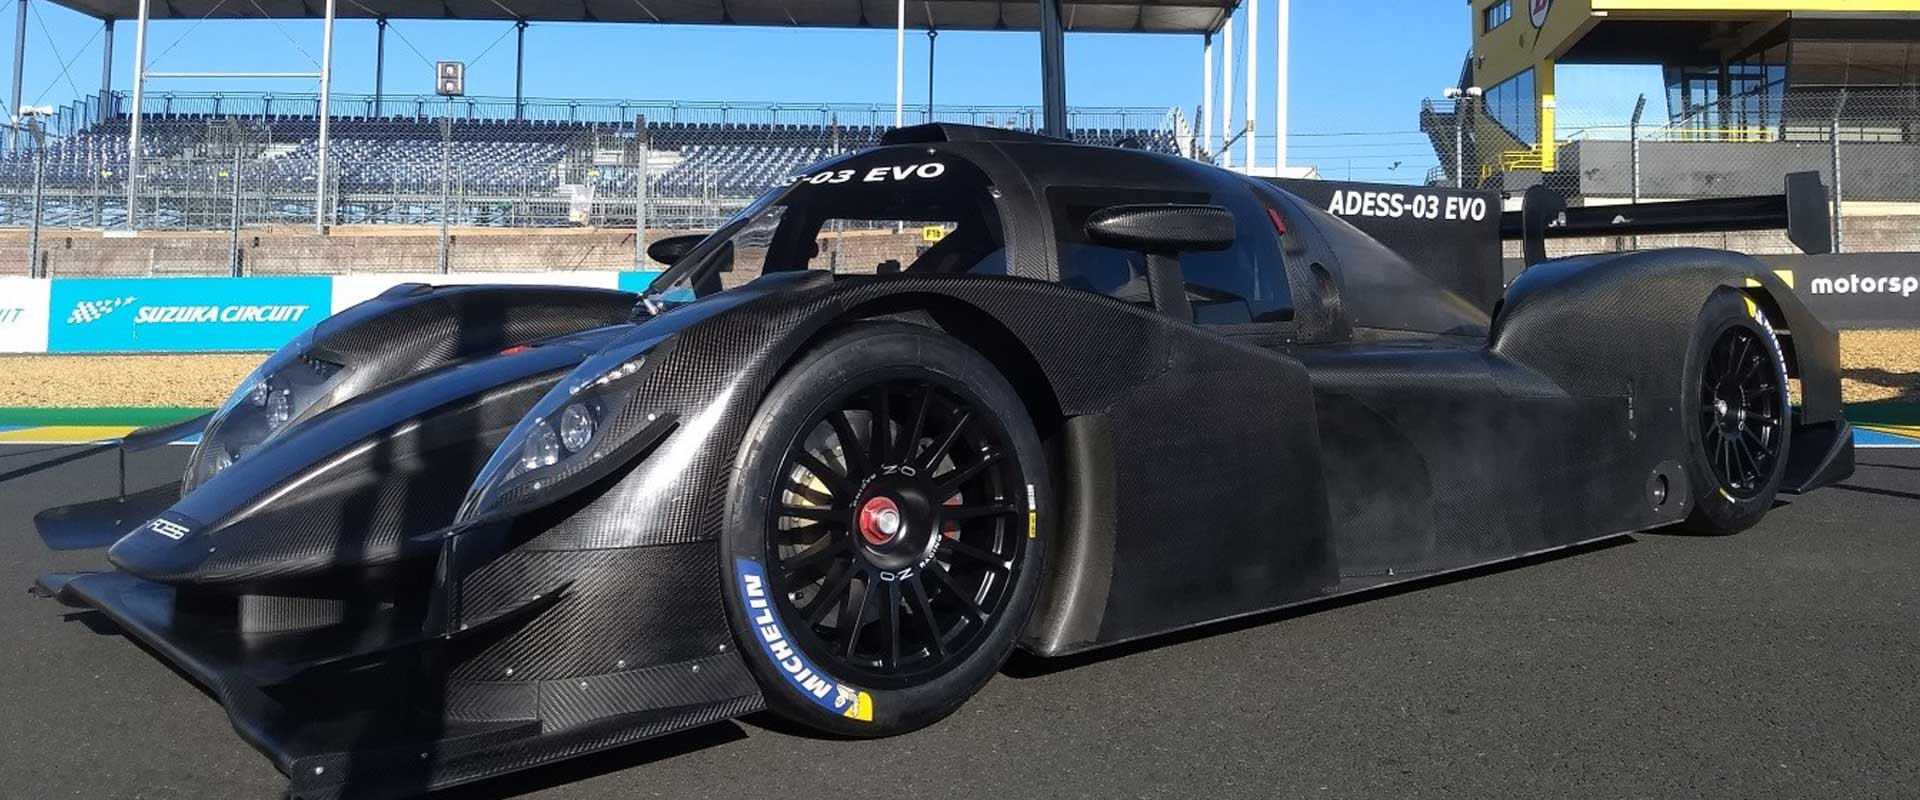 ADESS AG presents the ADESS-03 EVO LMP3 sports car  Motorsport Engineering | Race Car Manufacturer ADESS chassis partner of the LMPH2G: Mission H24 ADESS chassis partner of  Pininfarina H2 Speed powered by GreenGT